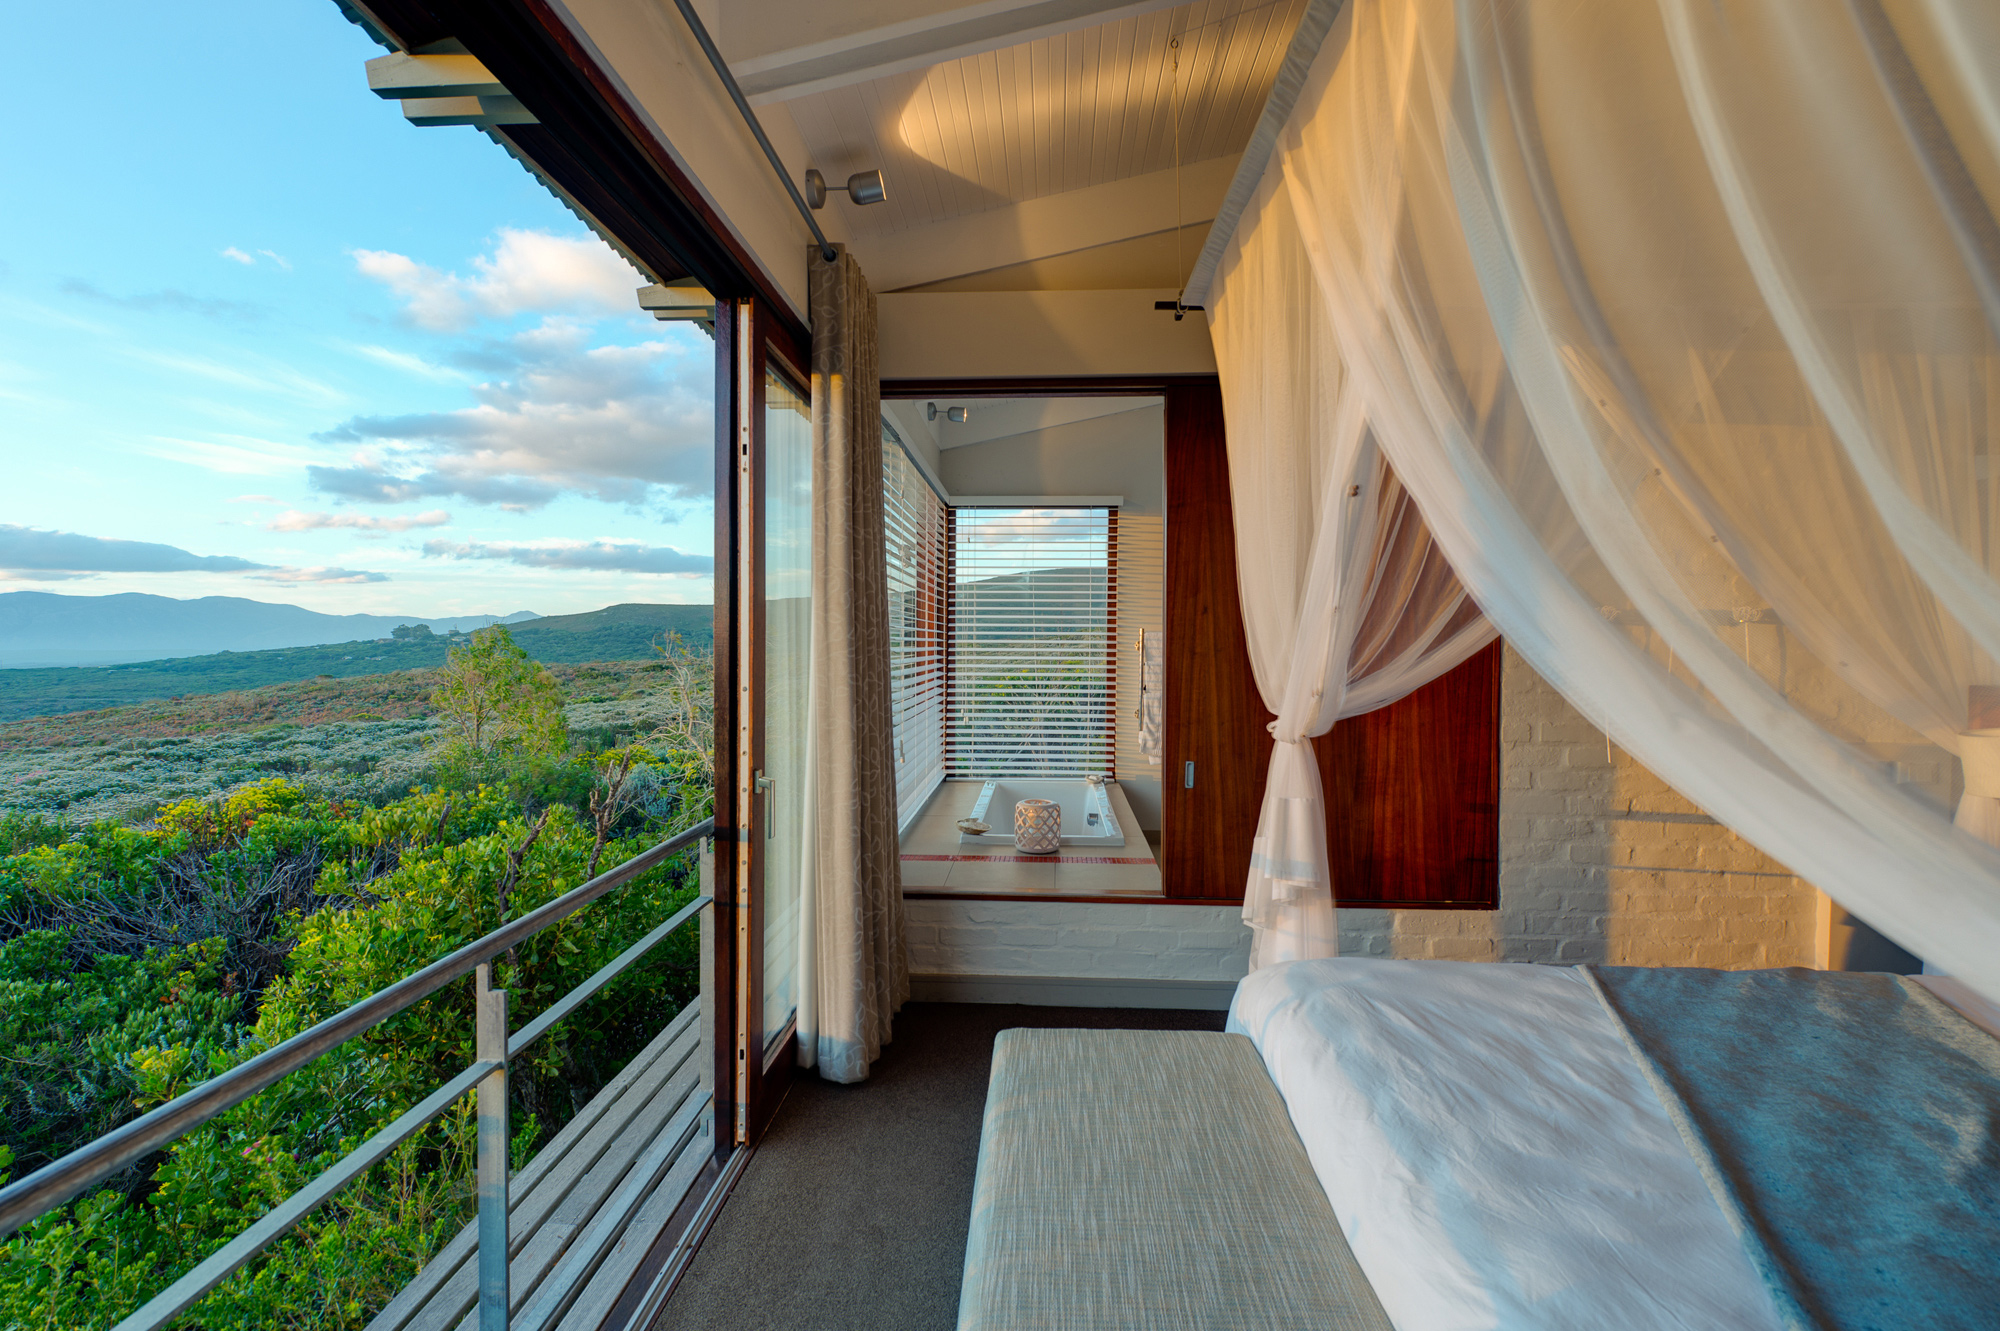 Accommodations South Africa Grootbos Private Nature Reserve 5 Star Holiday South Africa